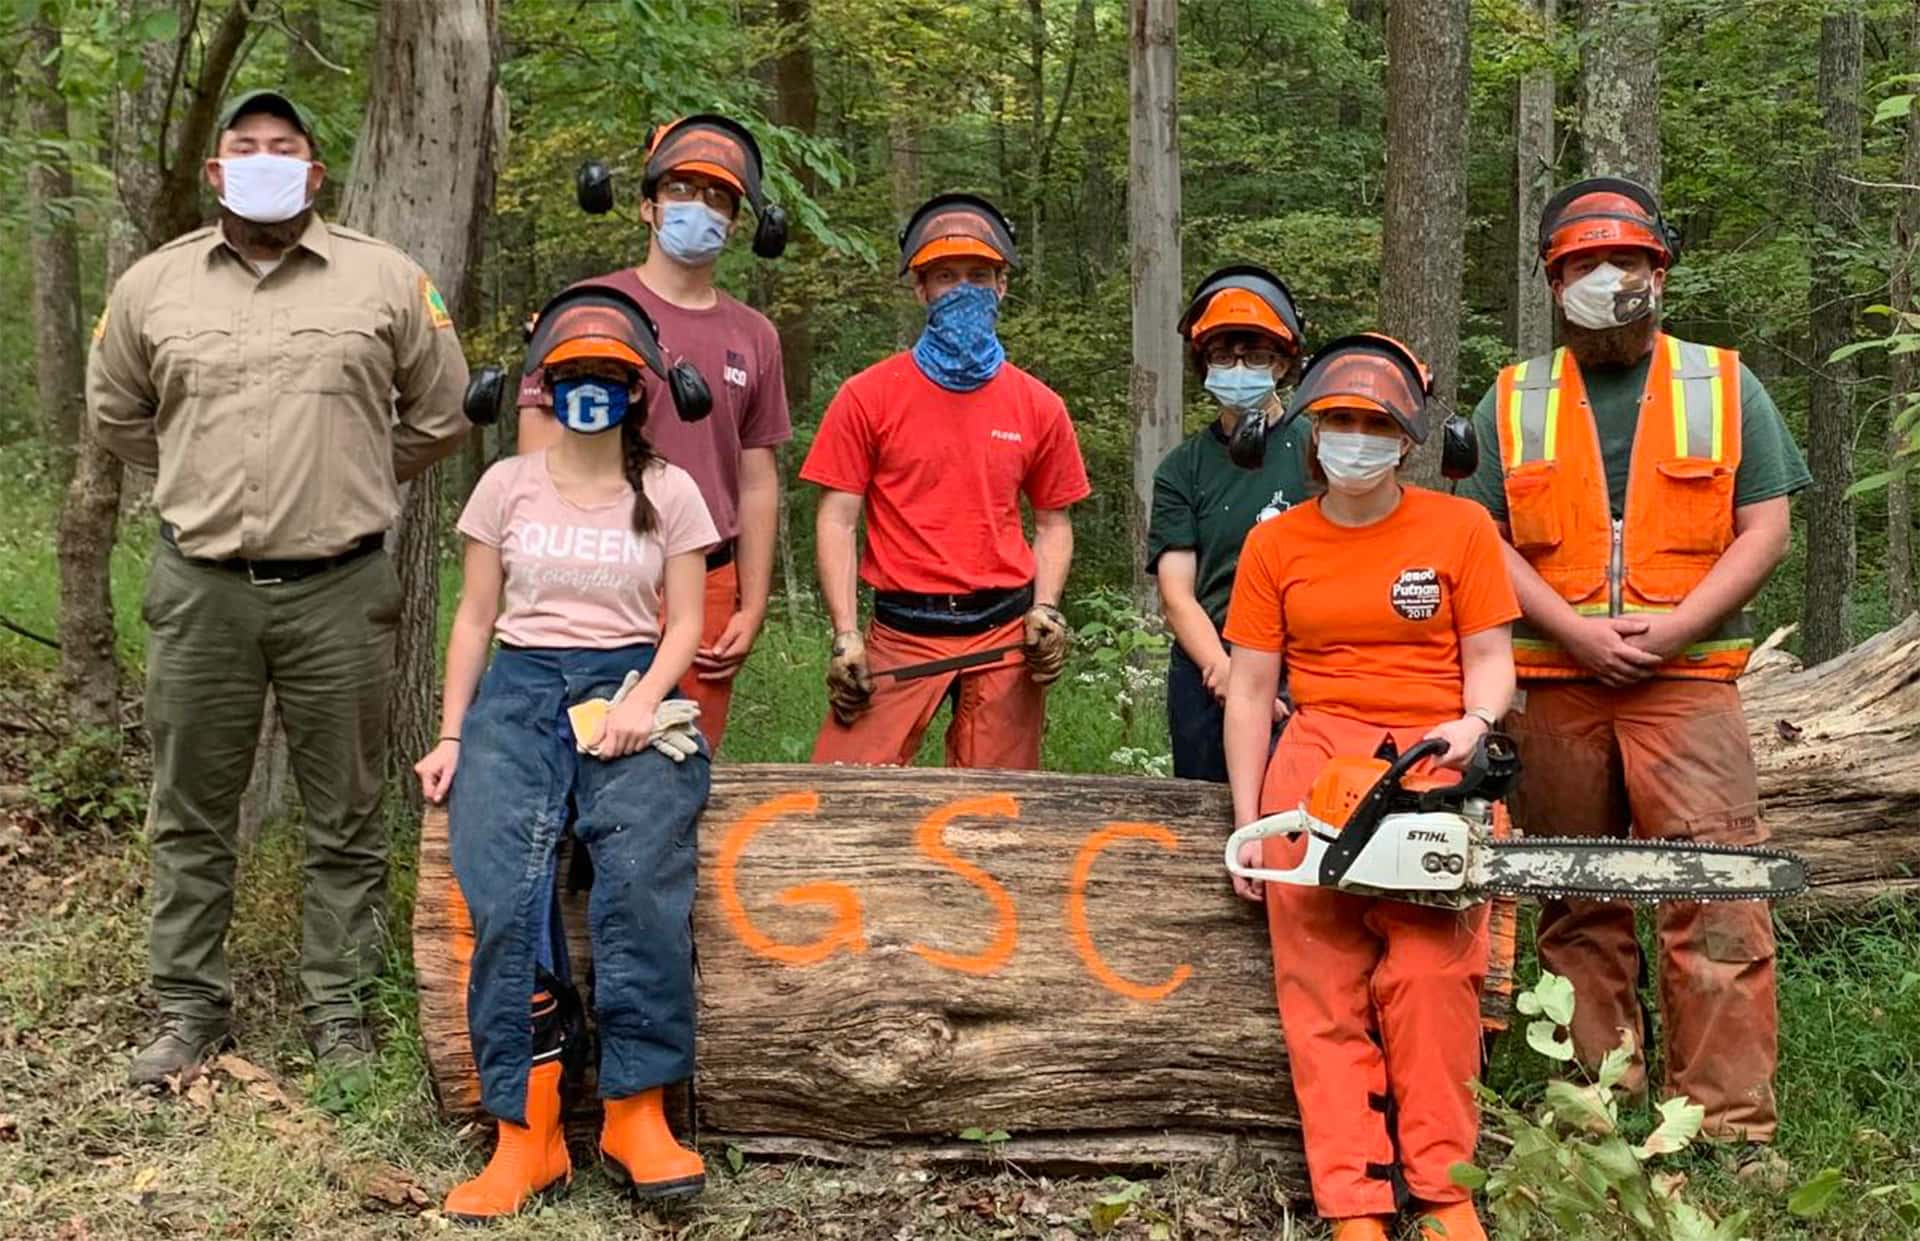 Glenville State College students take part in W.Va. Division of Forestry timber felling and chainsaw safety workshop